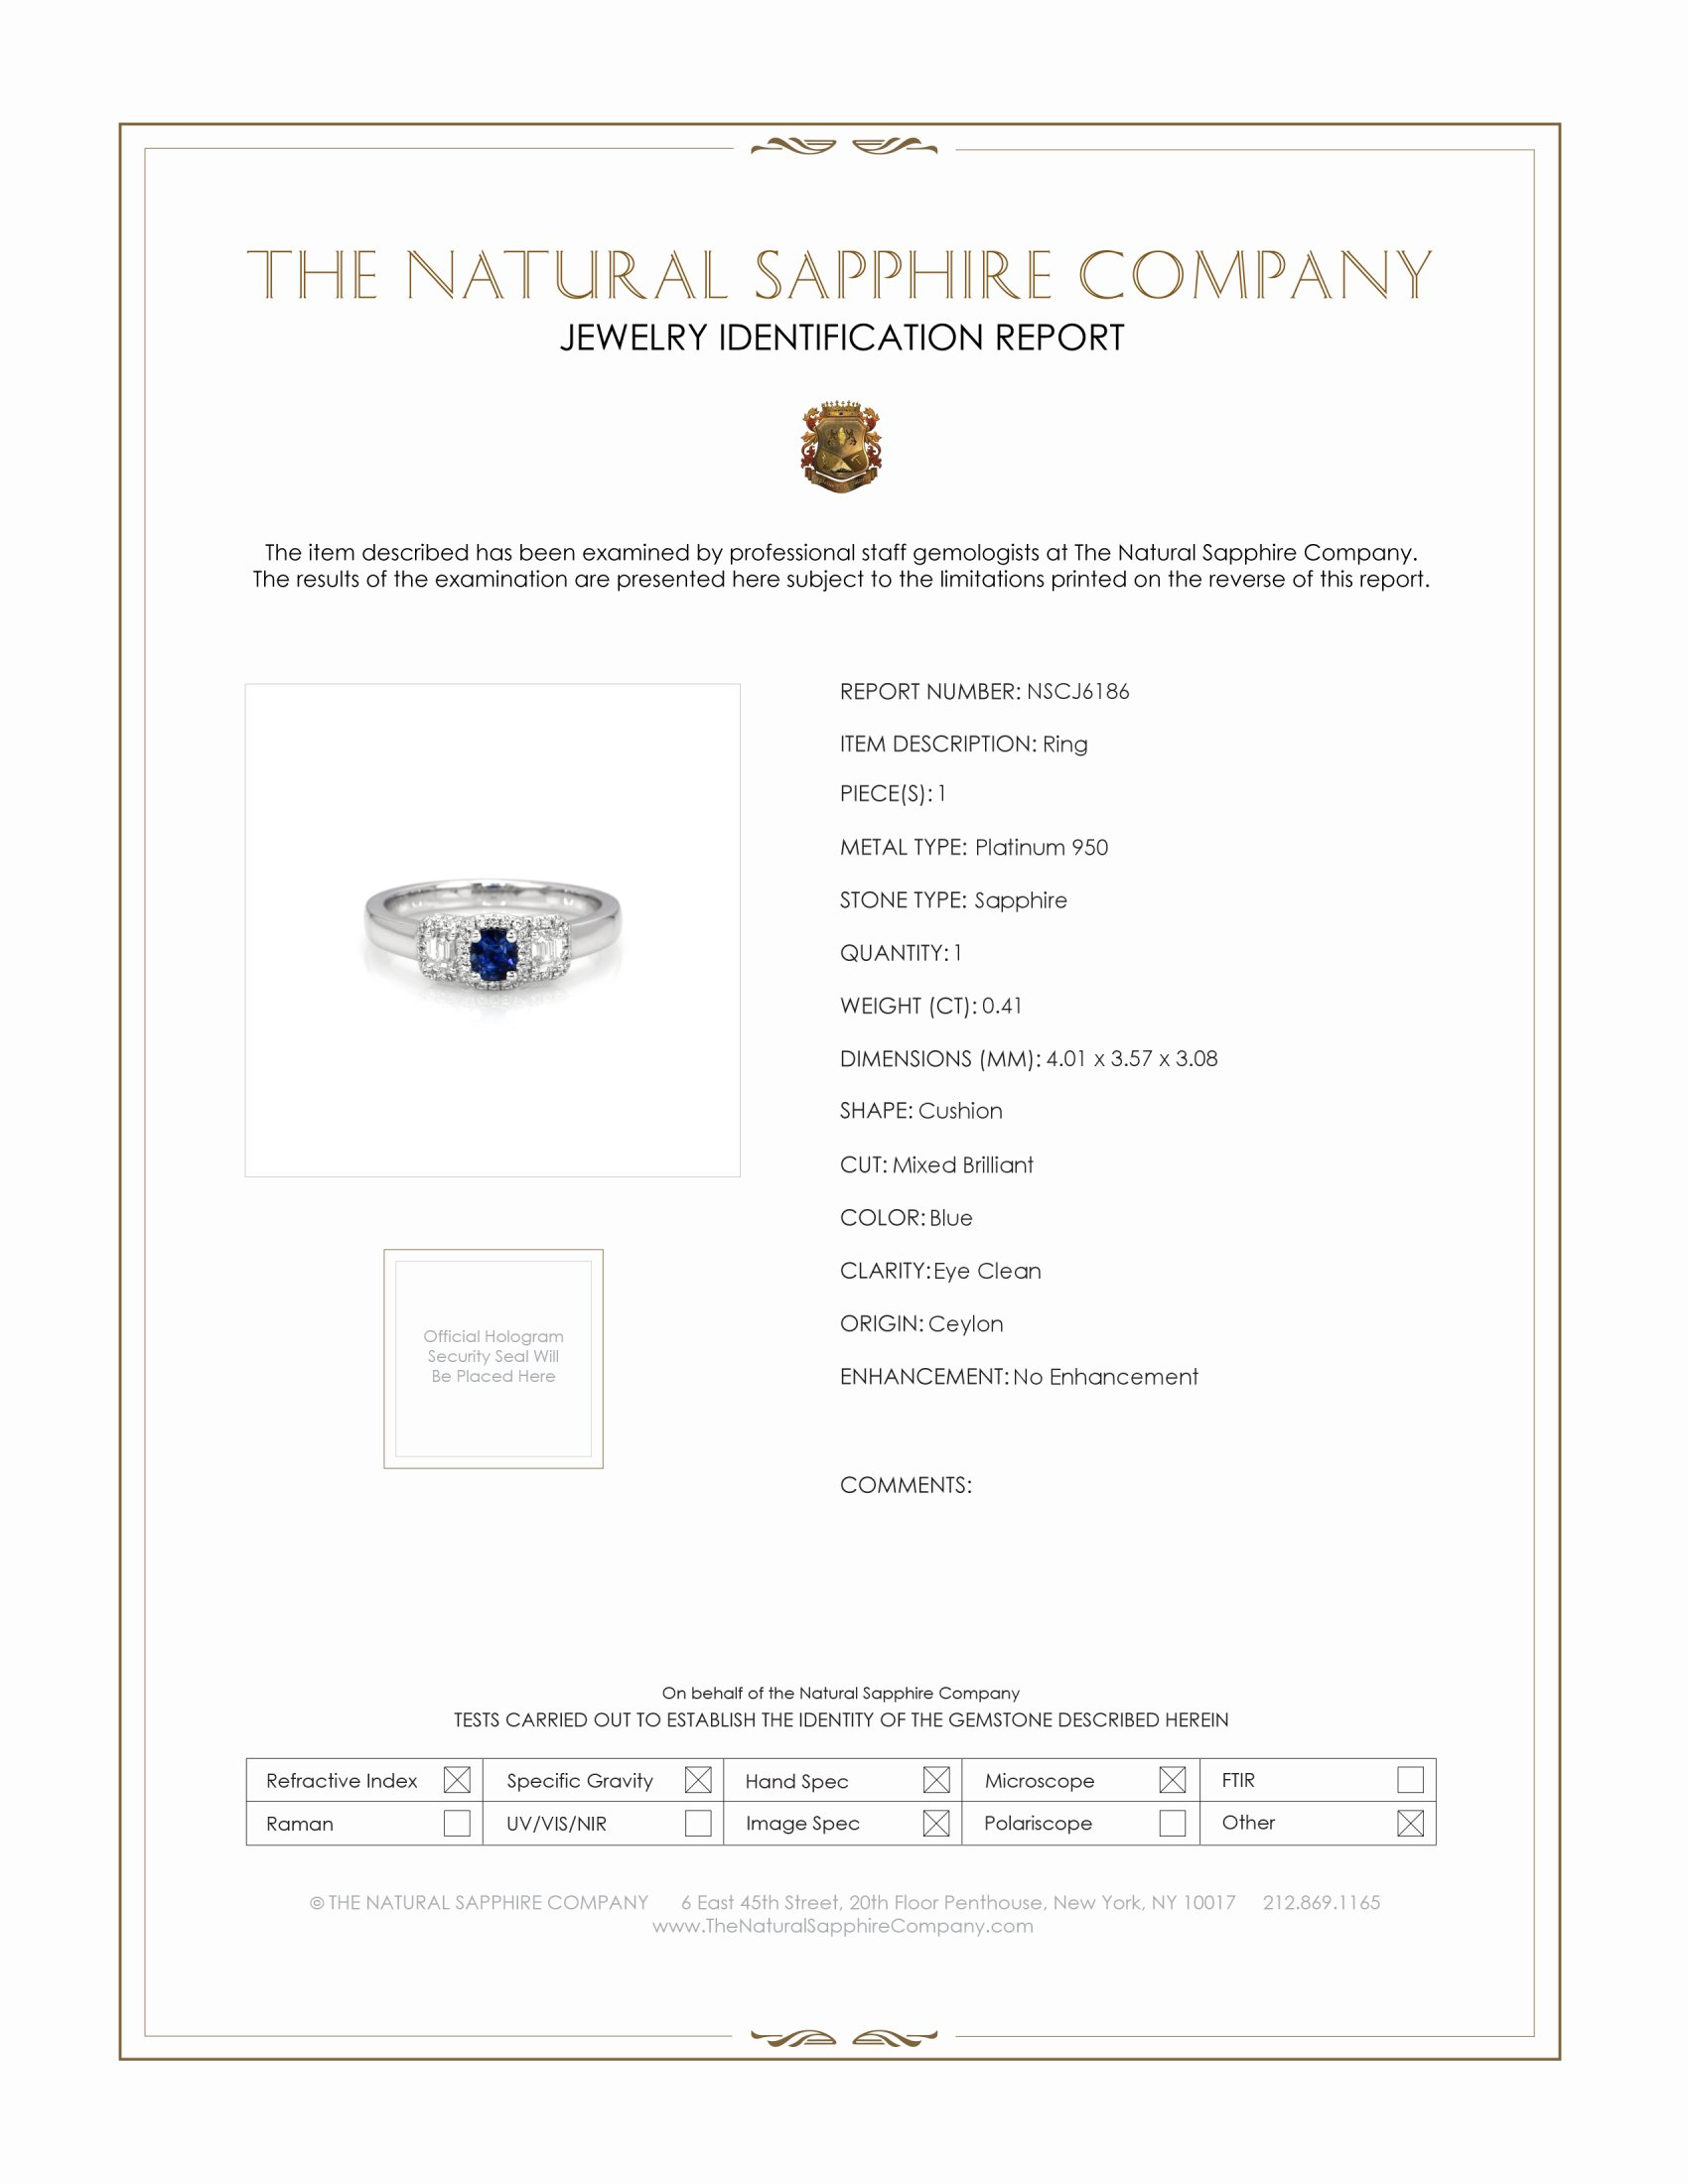 0.41ct Blue Sapphire Ring Certification